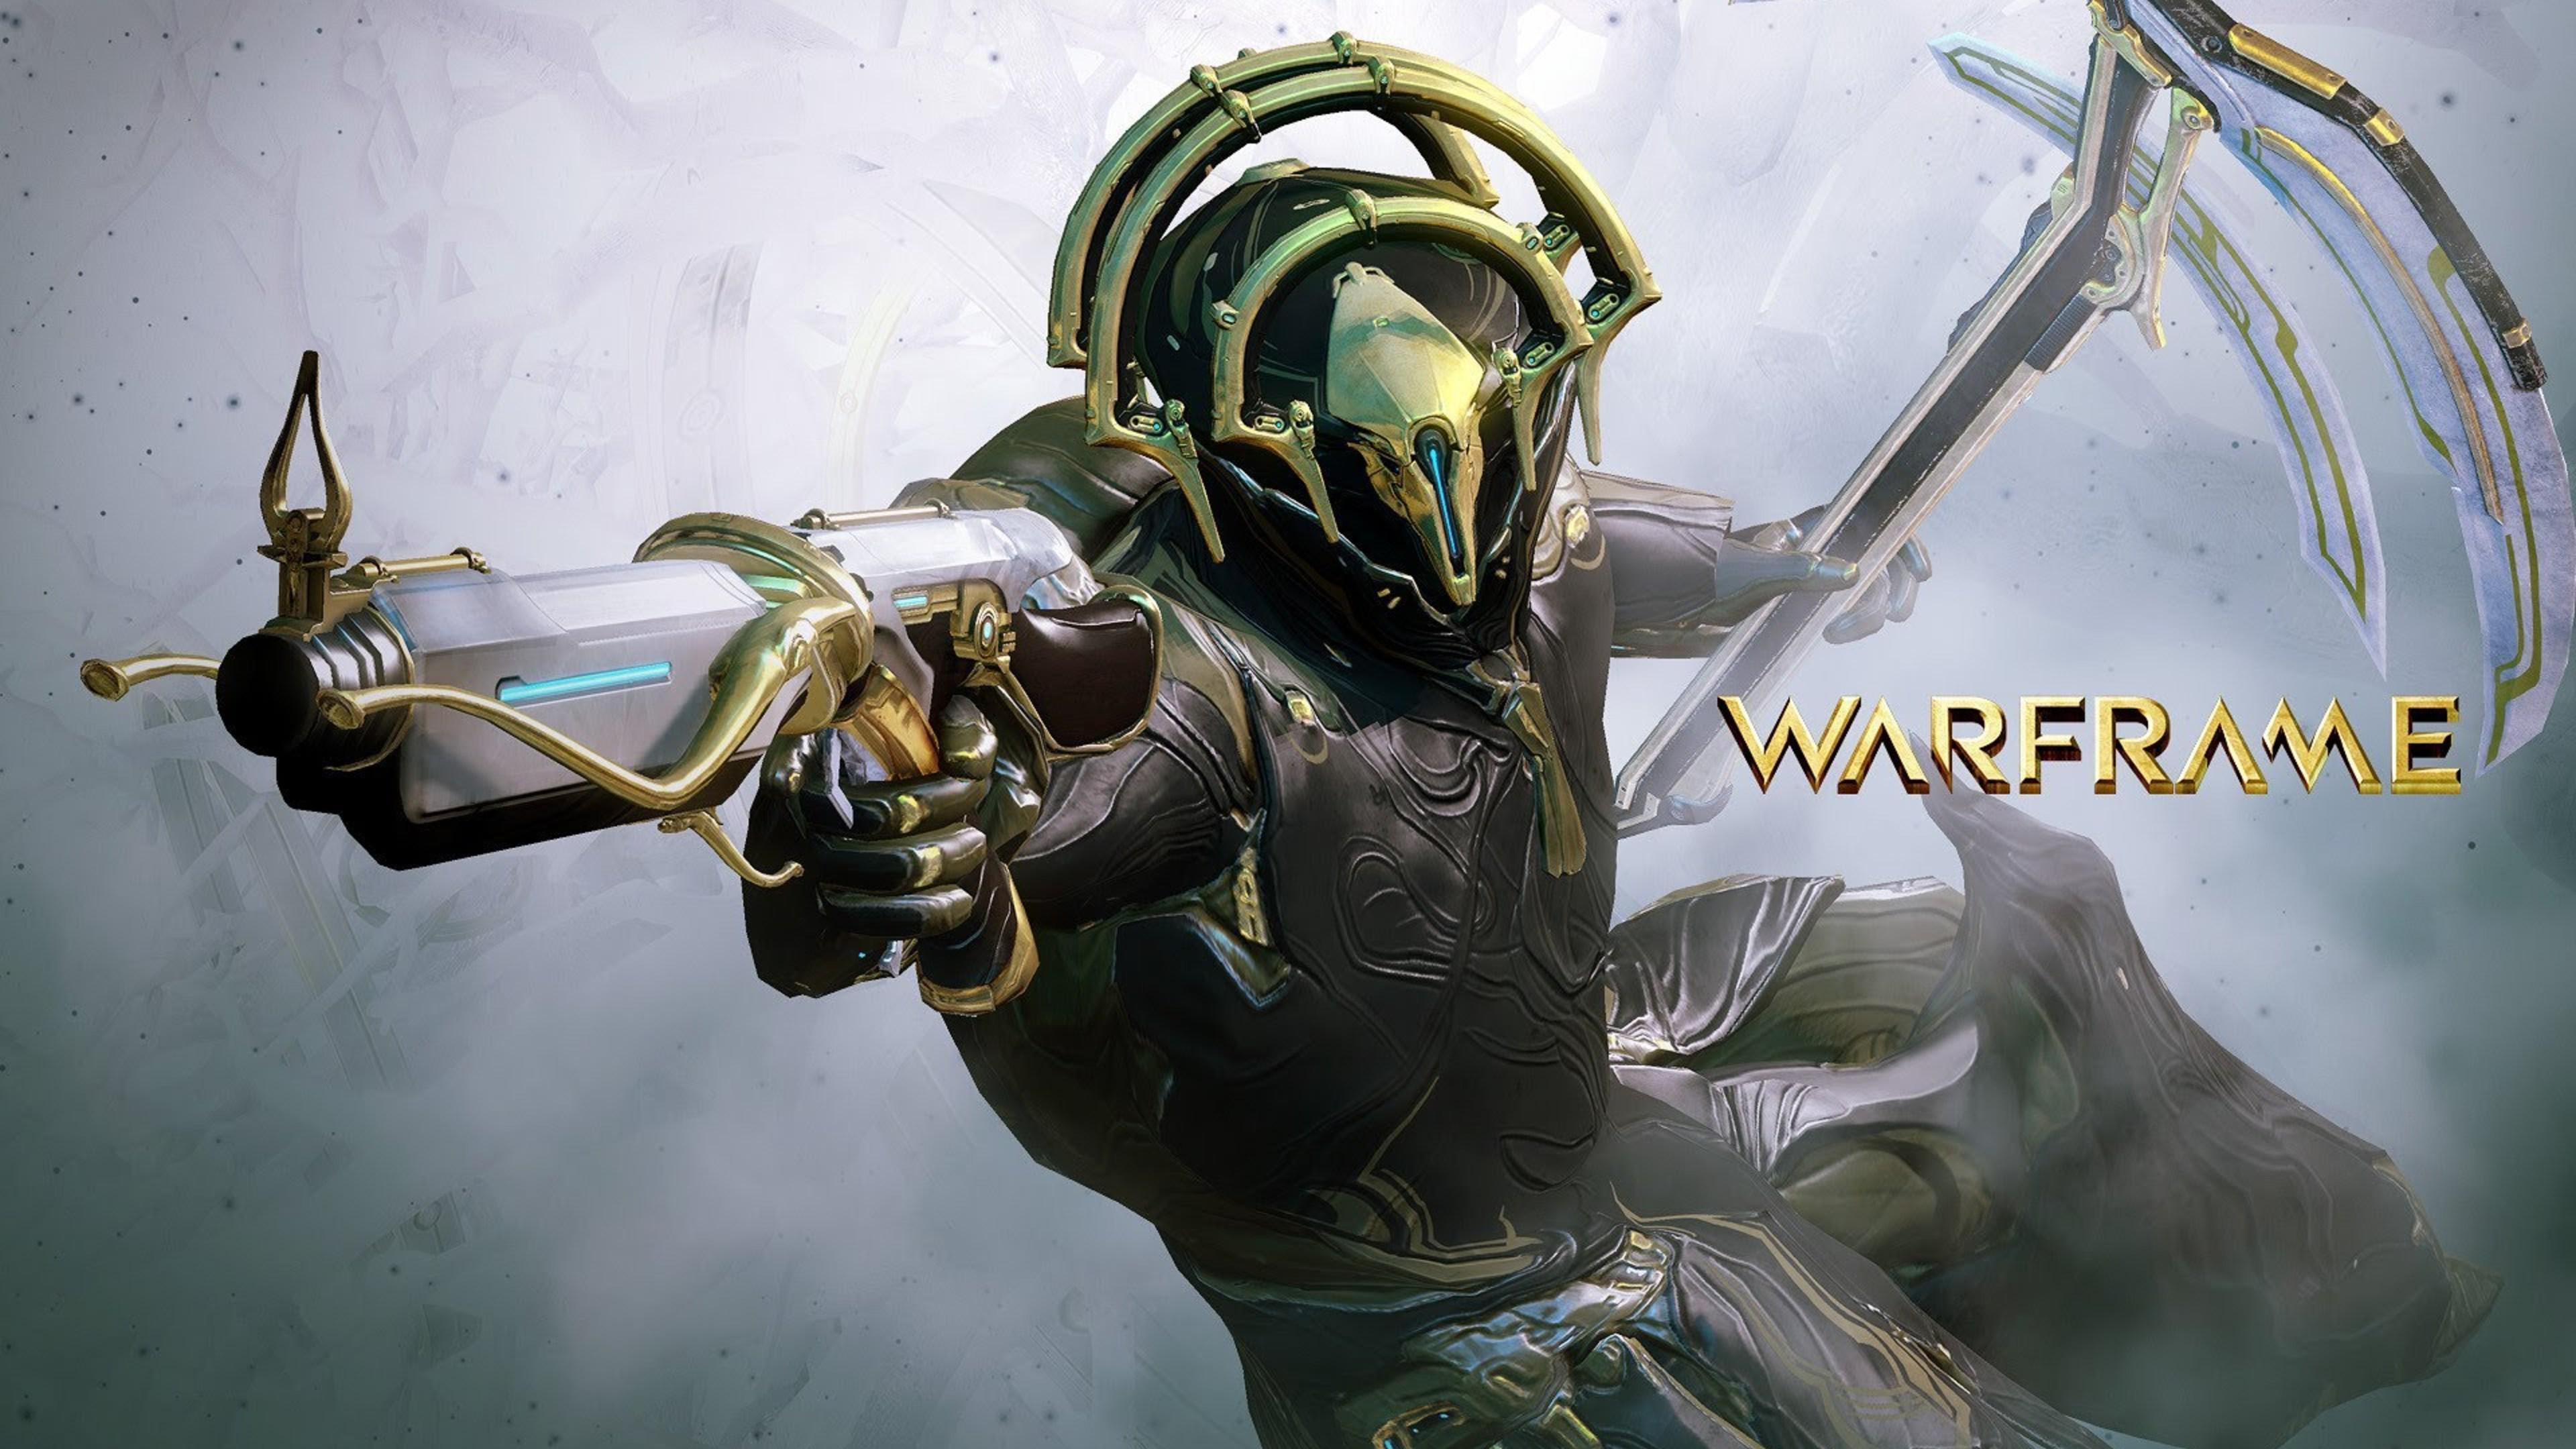 HD Warframe Wallpapers For PC